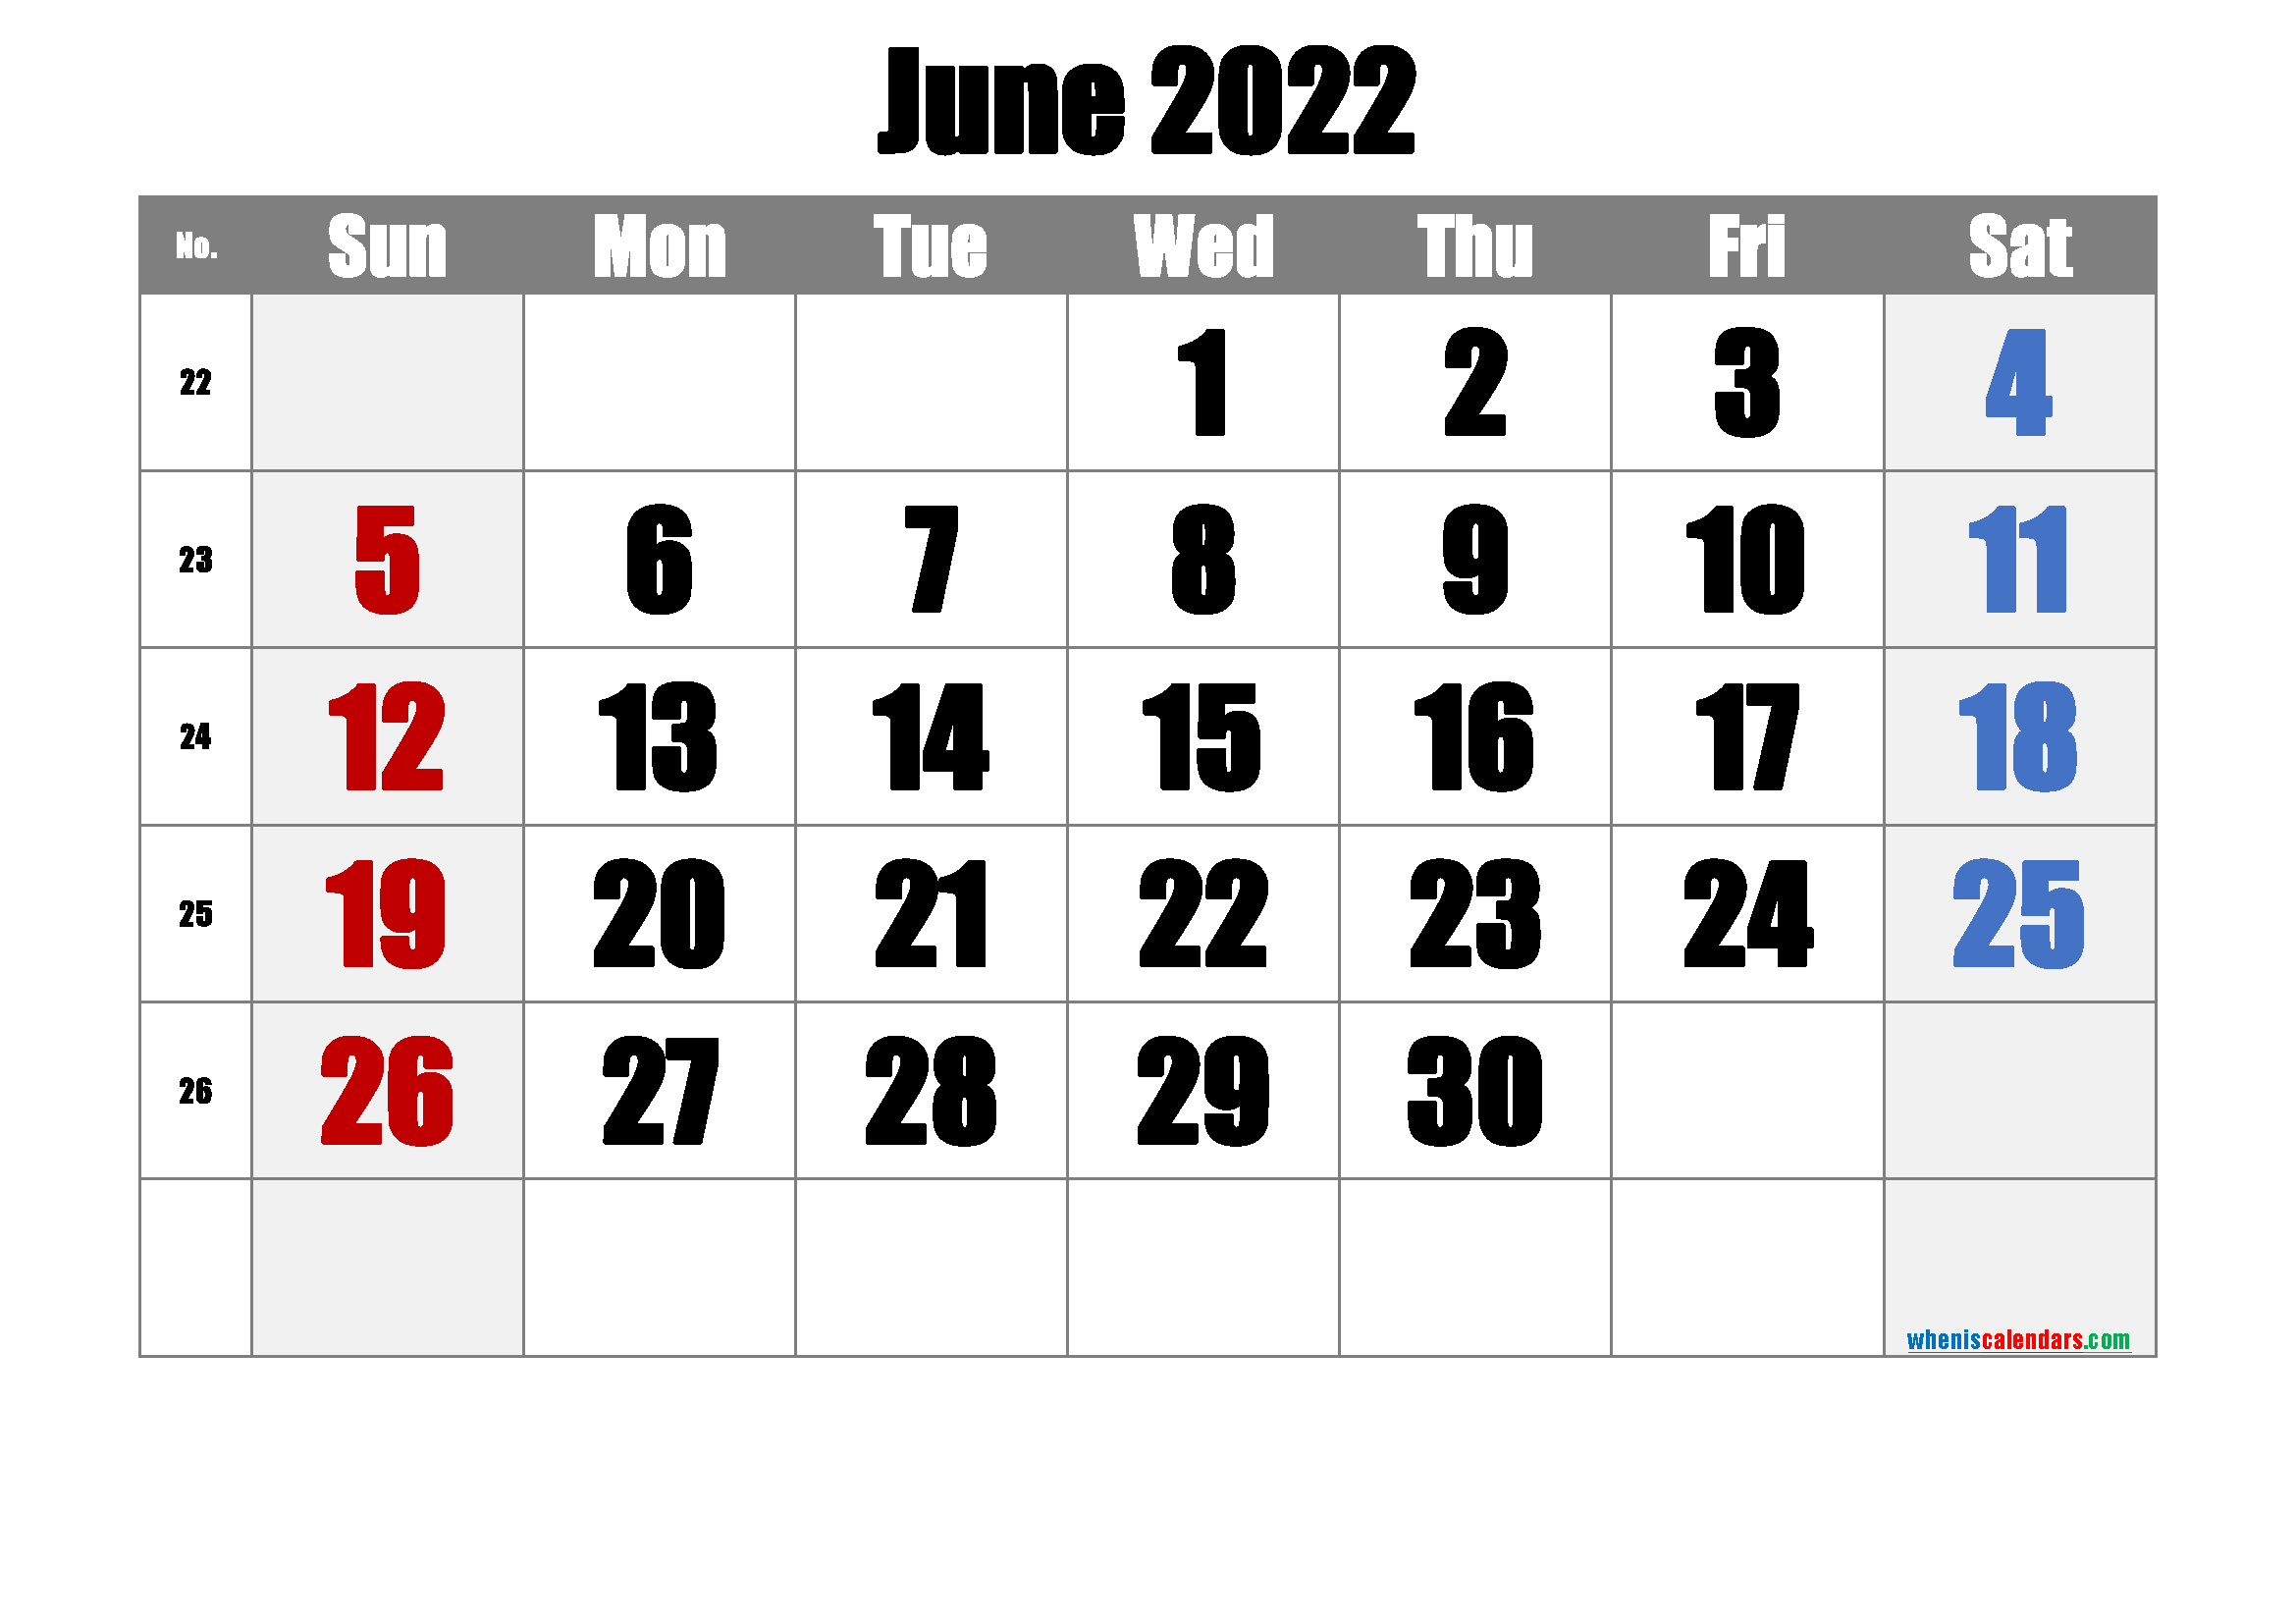 Free June 2022 Calendar with Week Numbers